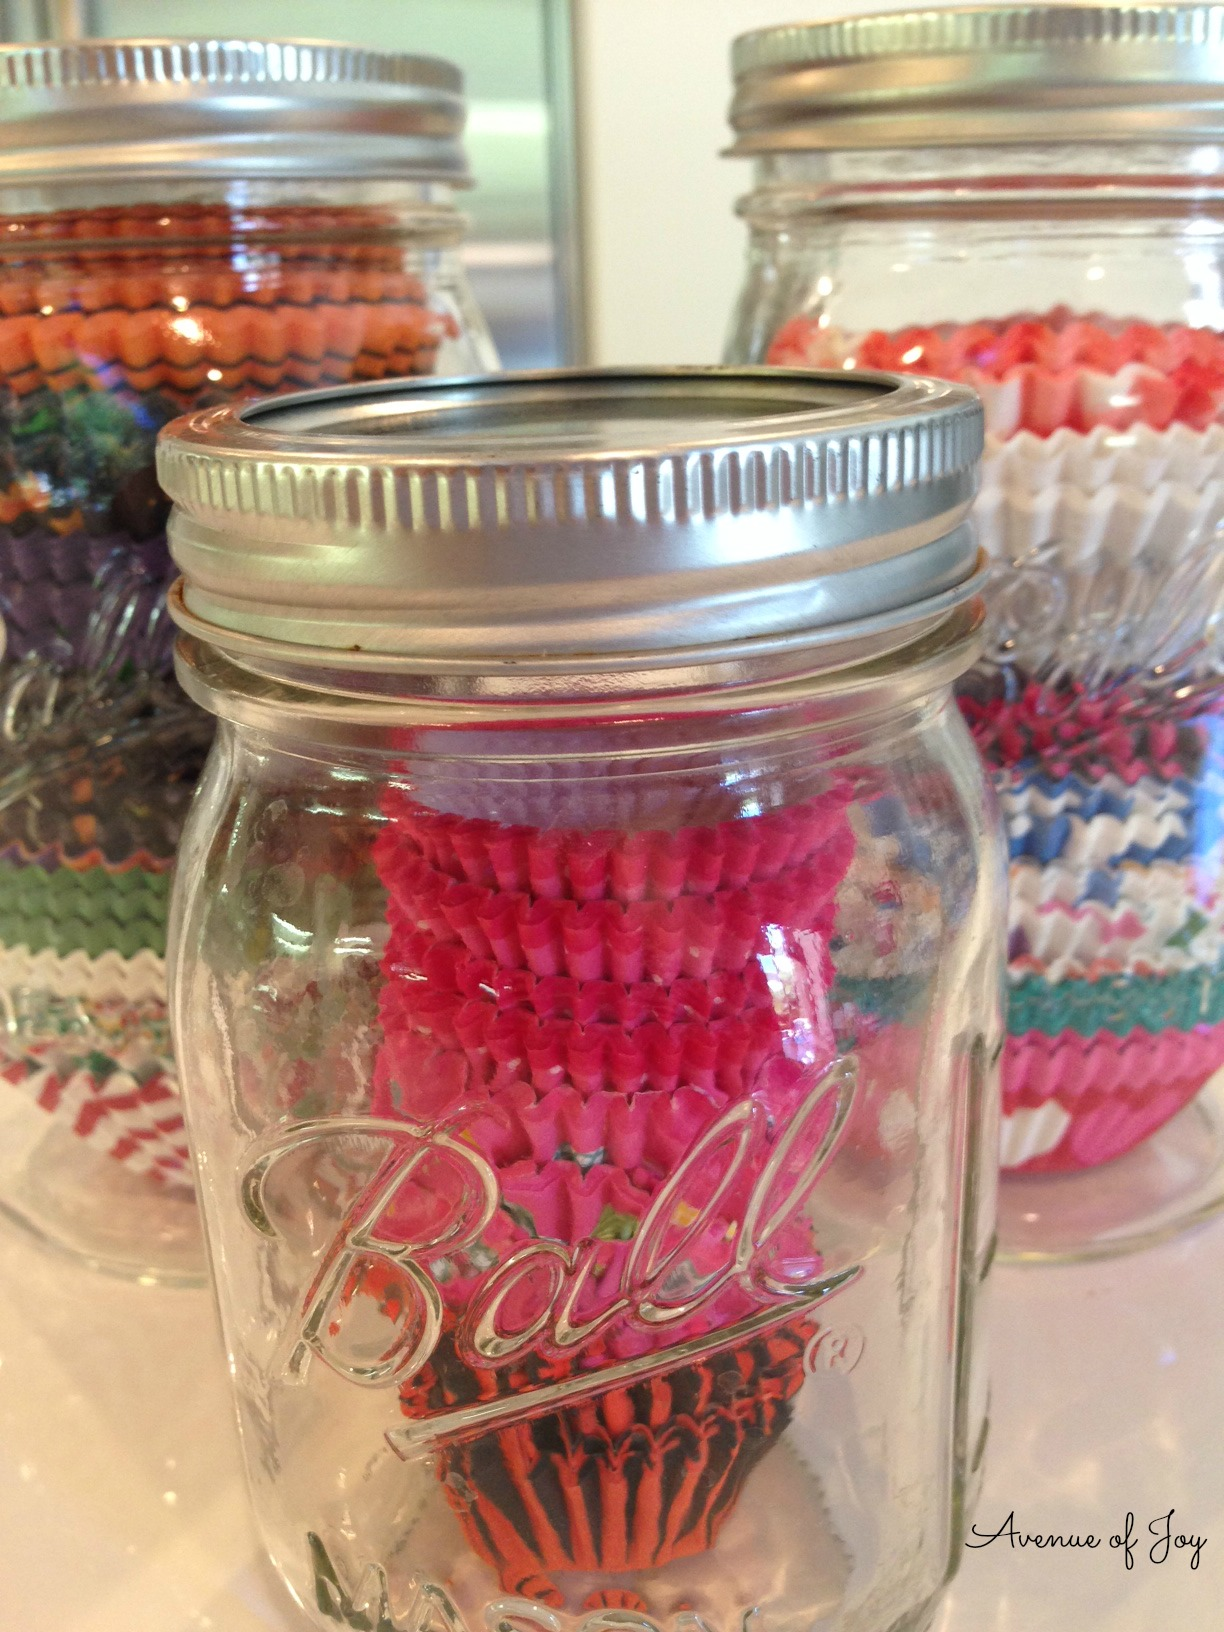 A Simple Way to Organize CupcakeMuffin Liners Avenue of Joy